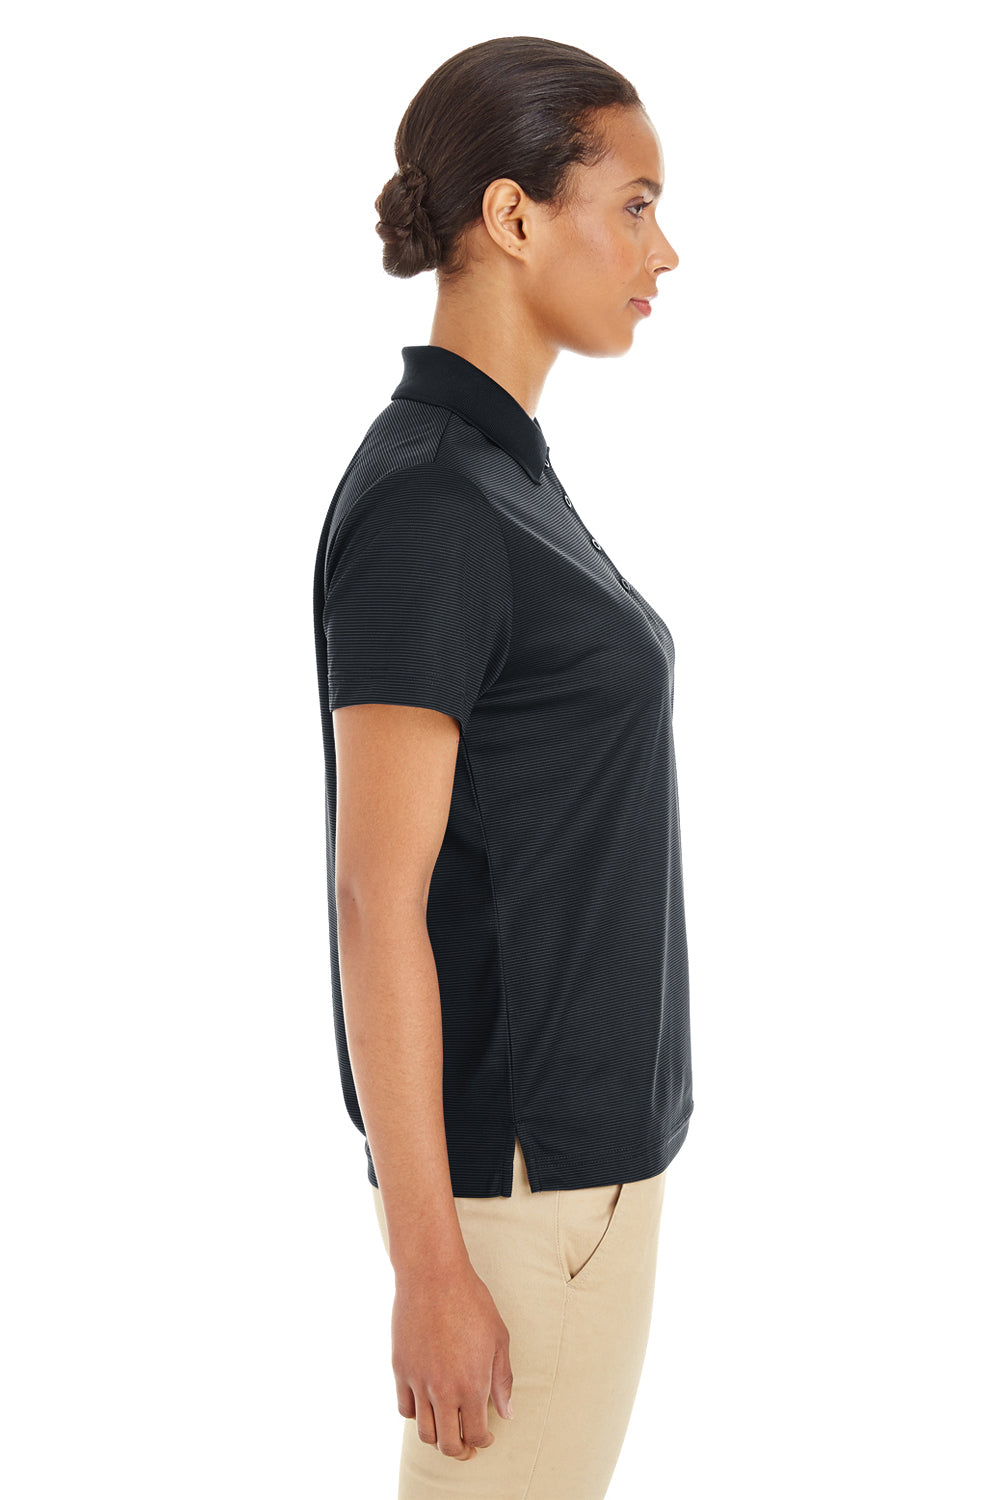 Core 365 CE102W Womens Express Performance Moisture Wicking Short Sleeve Polo Shirt Black Side